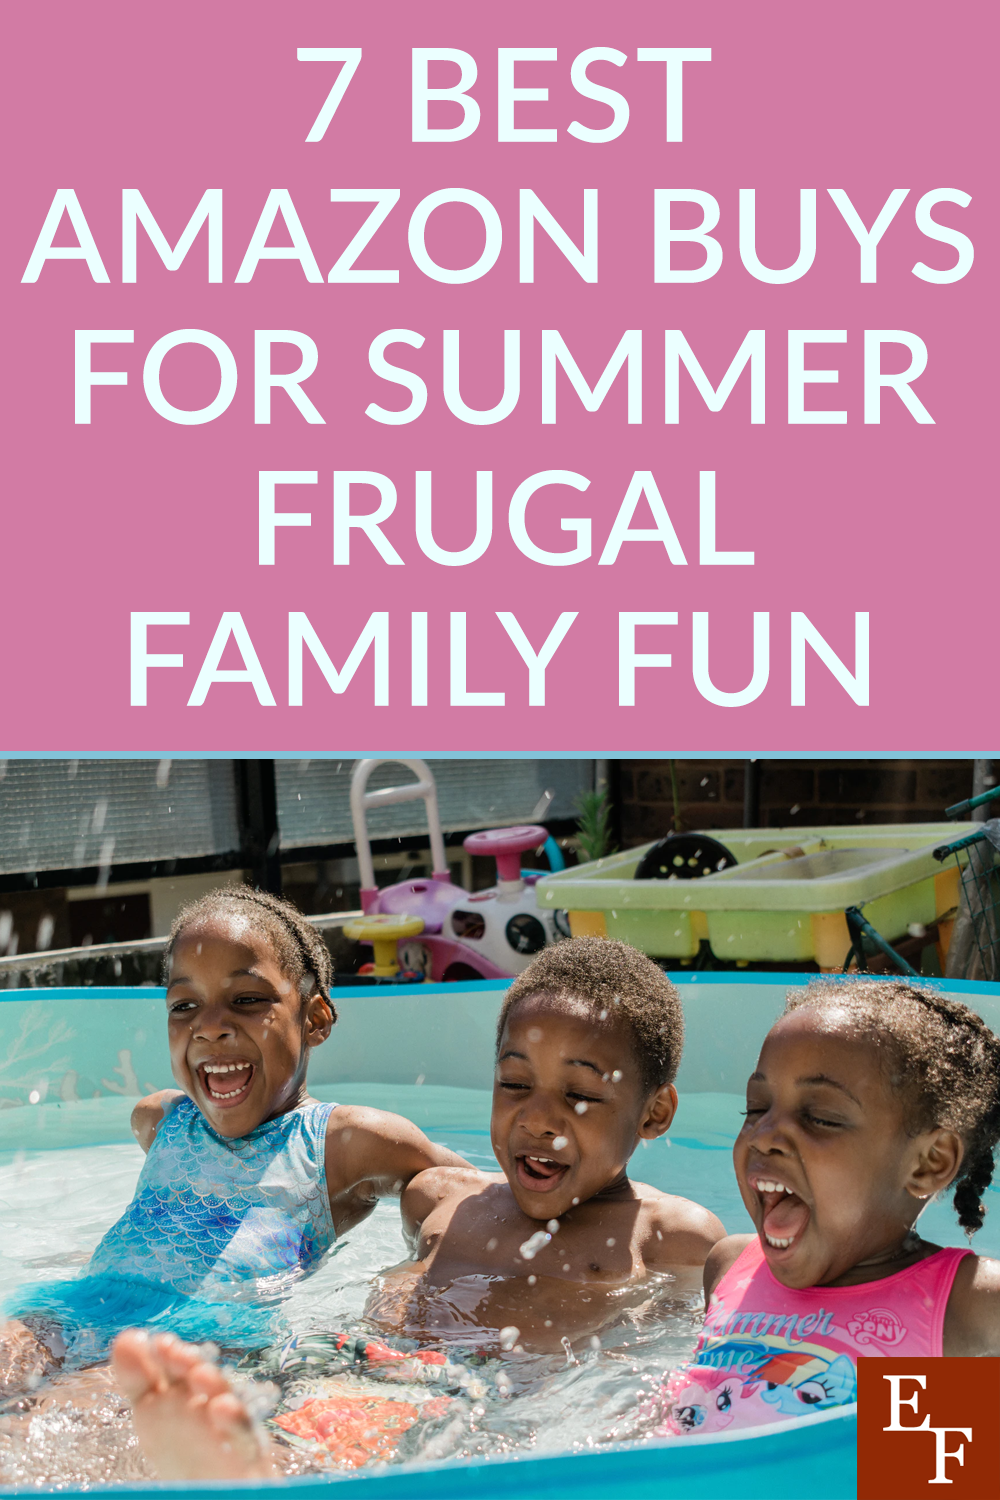 This Summer will be way more open then 2020. Here are the best frugal family fun items you can find on Amazon.